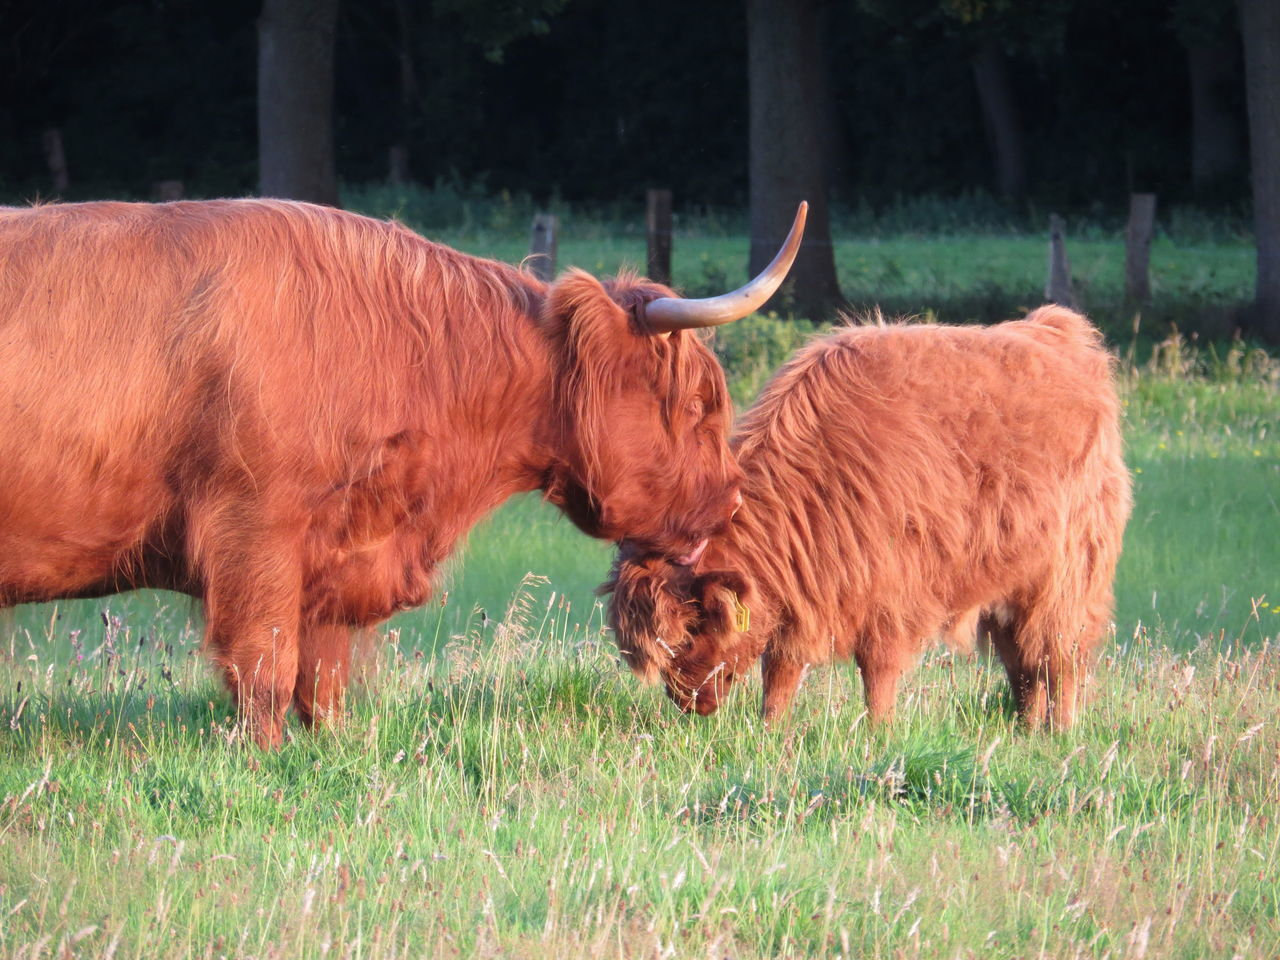 Animal Family Animals Cattle Evening Light Grassland Grazing Herbivorous Highland Cattle Mammal Nature No People Outdoors Pasture Young Animal Animal Themes Non-urban Scene From My Point Of View Taking Photos Side View